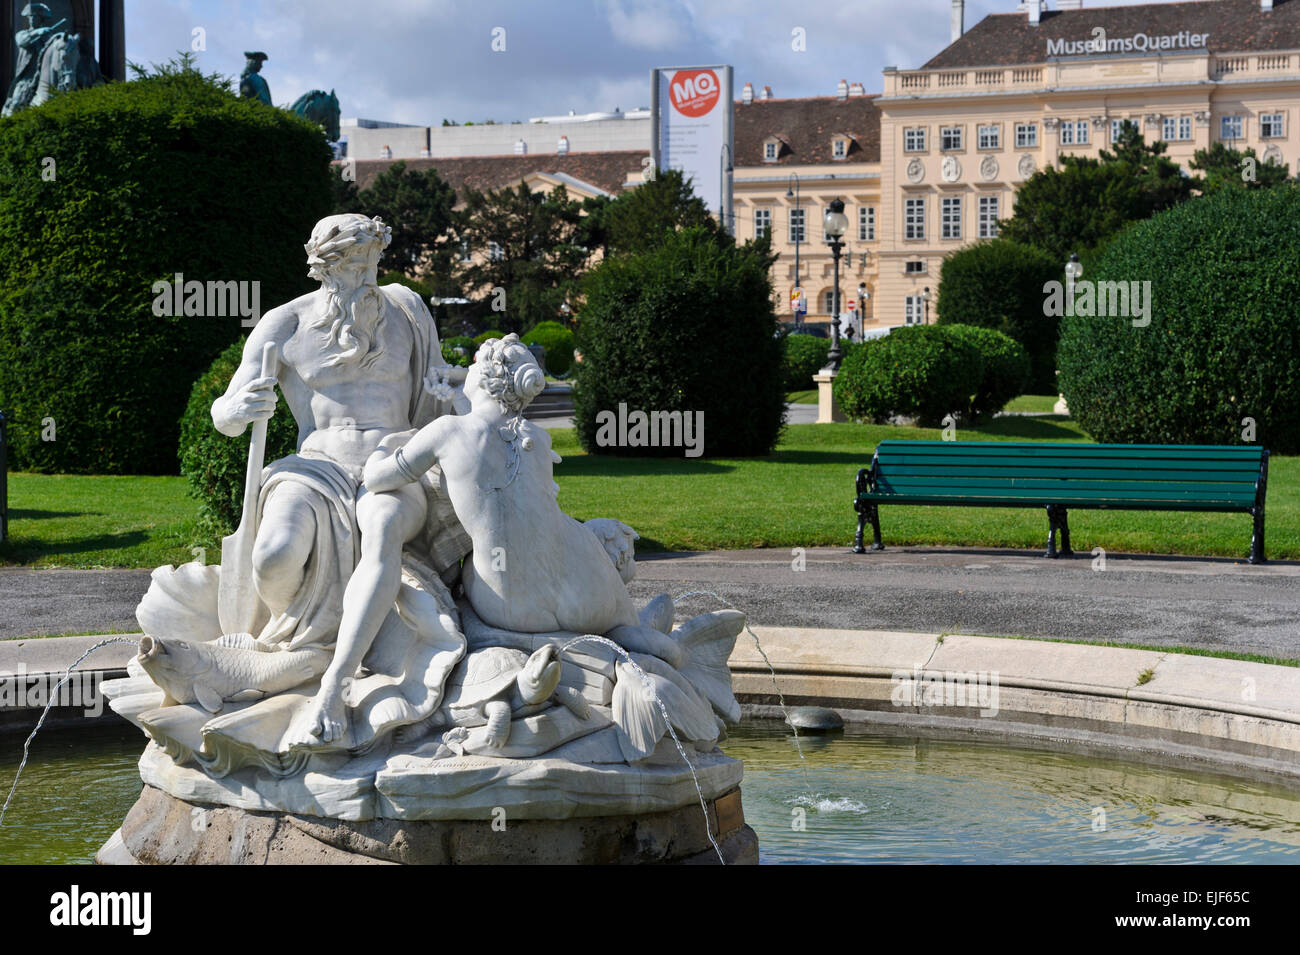 Water fountains with statues - Marble Statues At A Water Fountain Outside The Natural History Museum In Maria Theresa Platz Vienna Austria